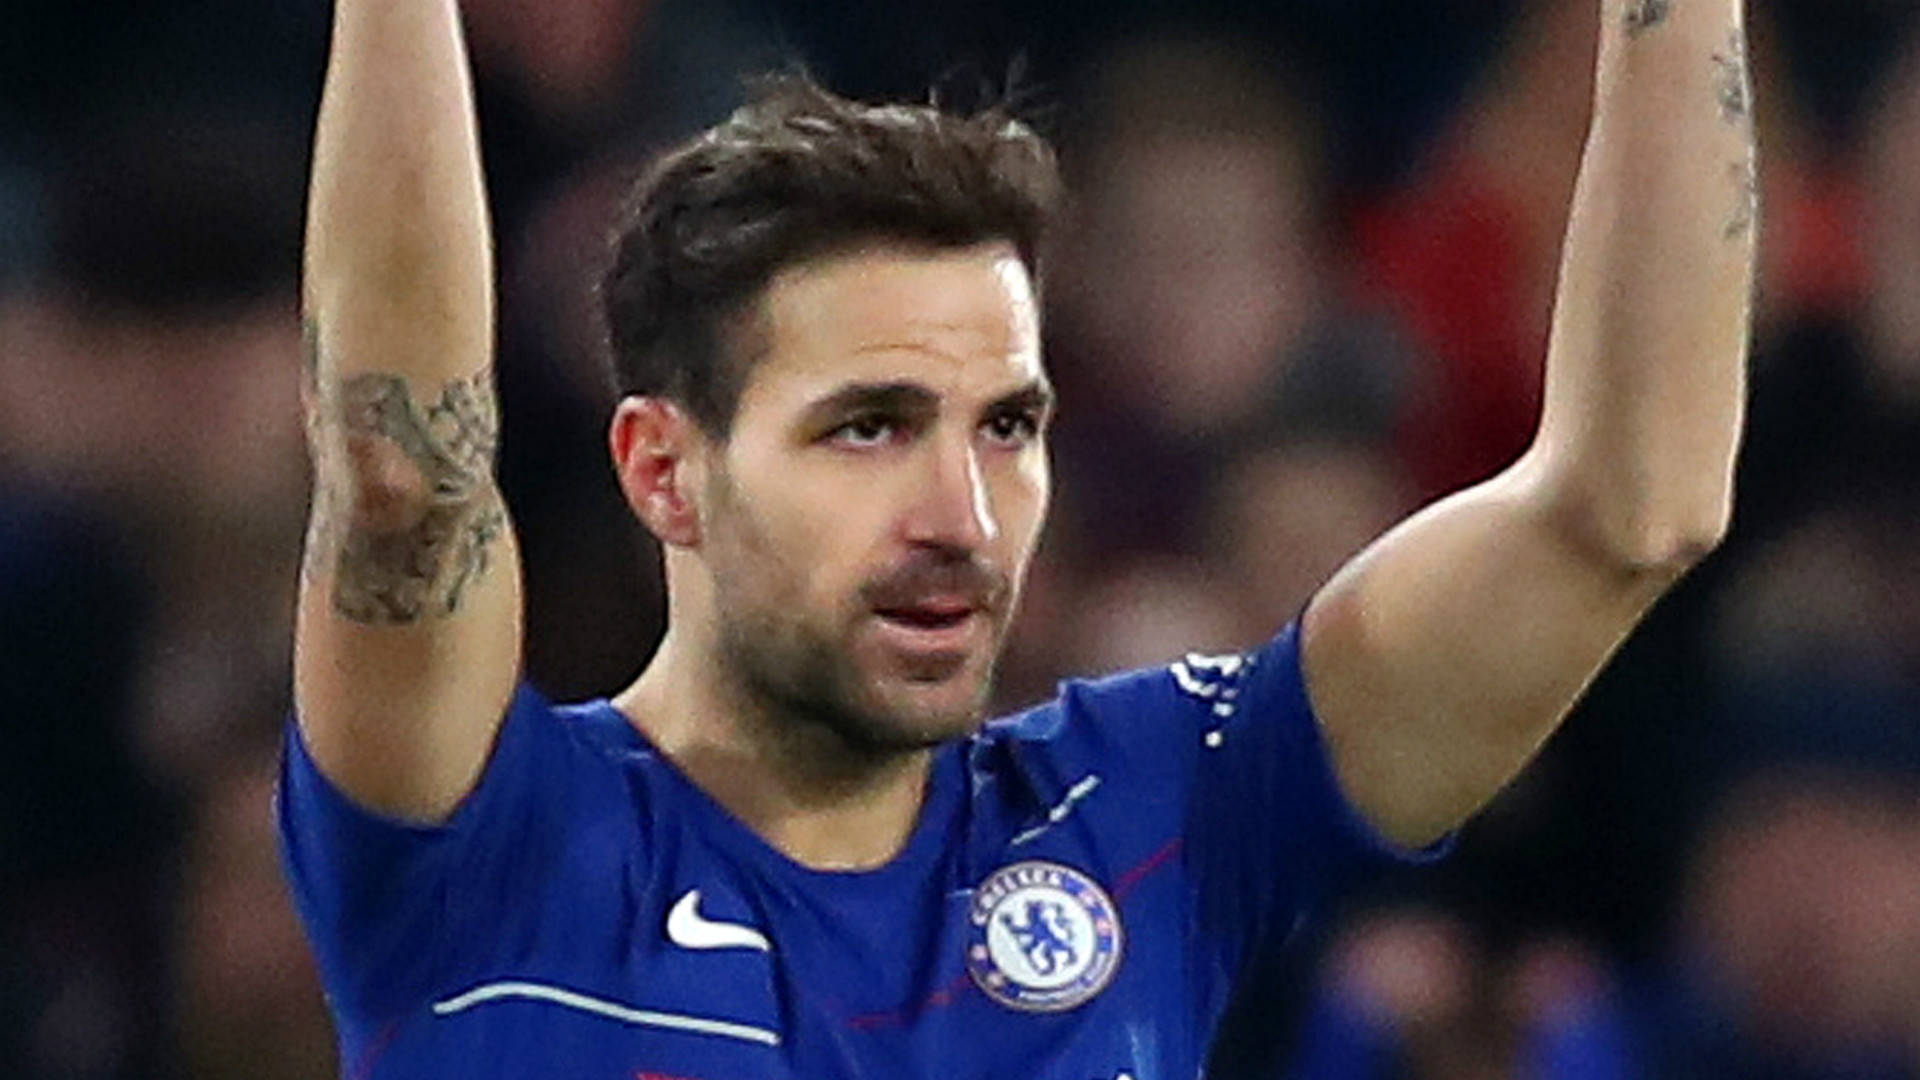 Fabregas bashes Chelsea for 'constant negativity' surrounding the club